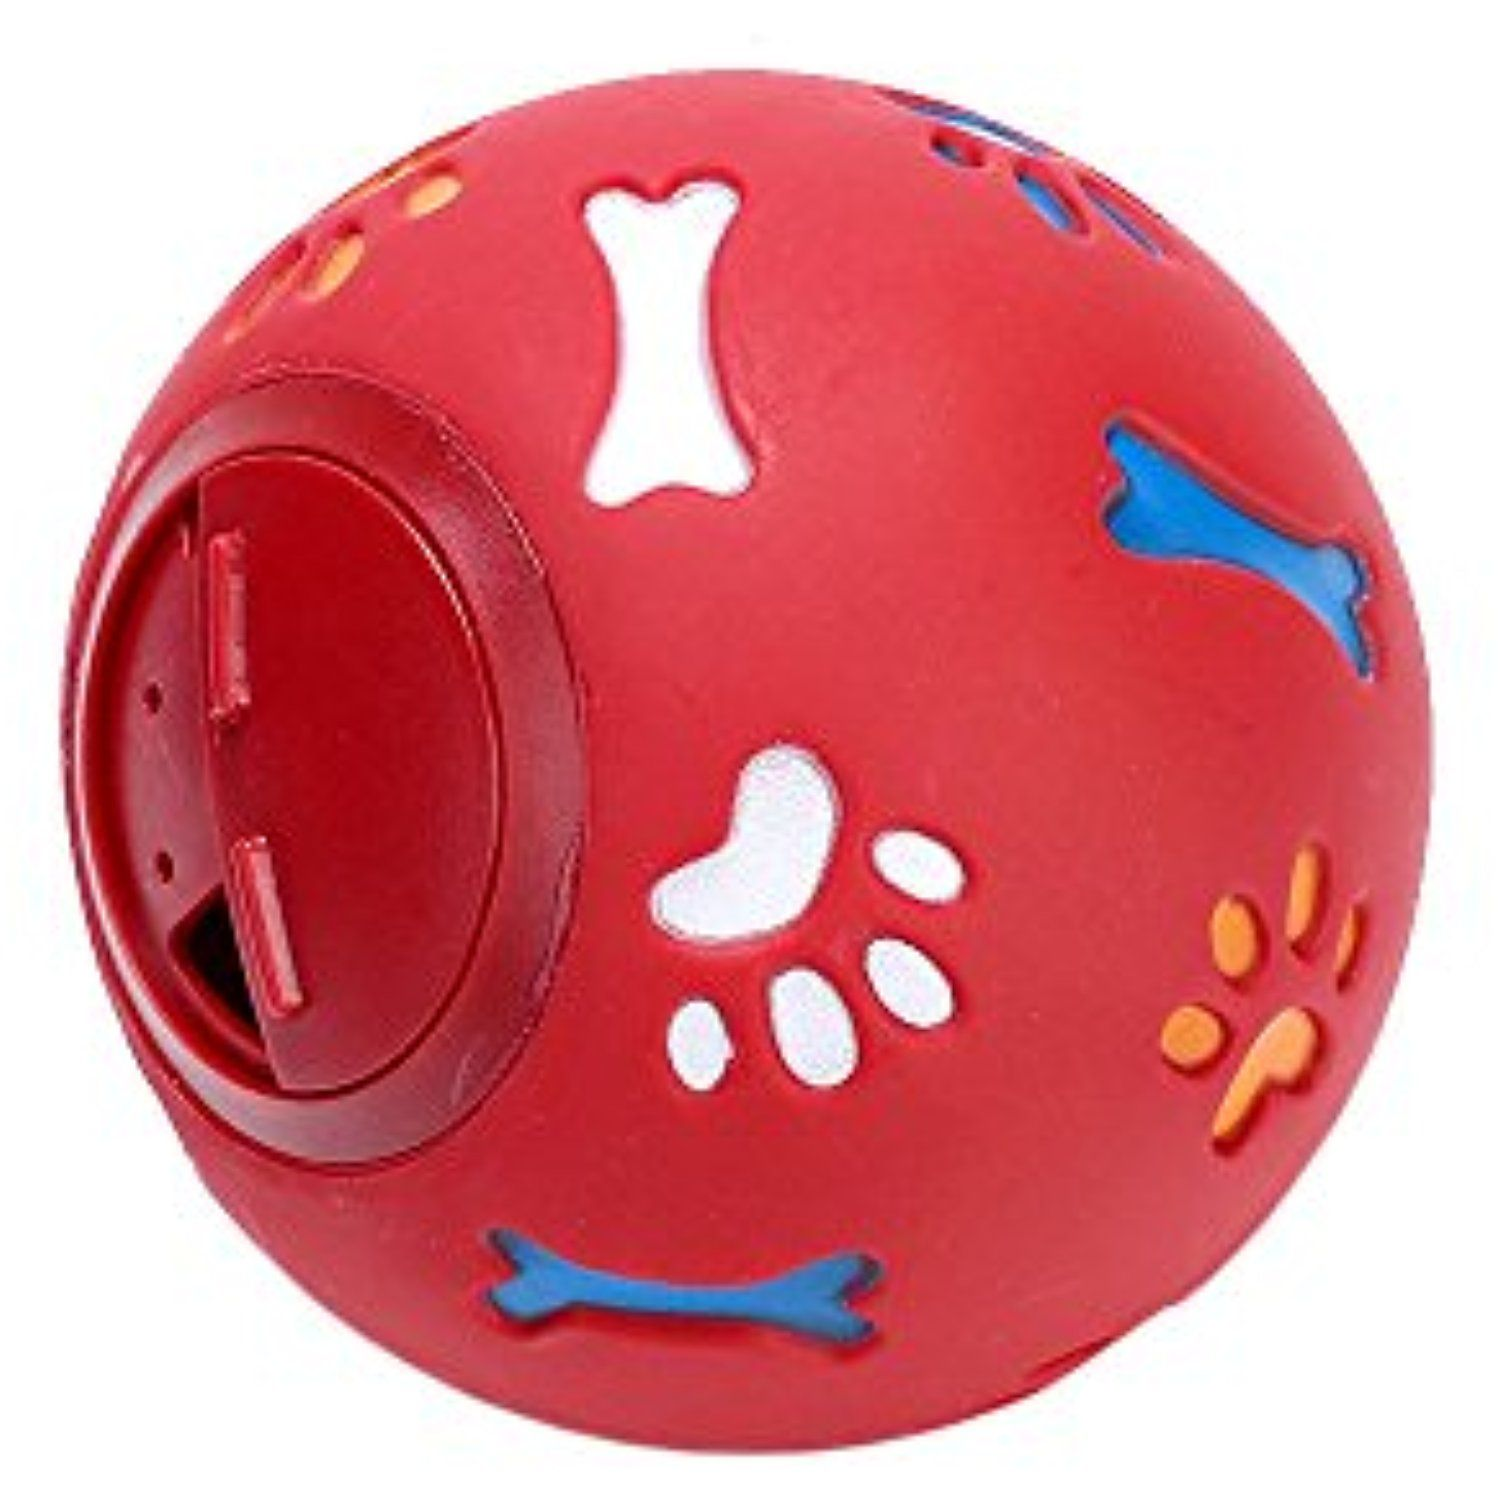 Zhwky Pet Toys Resistant Bite Food Storage Dogs Puzzle Ball Size